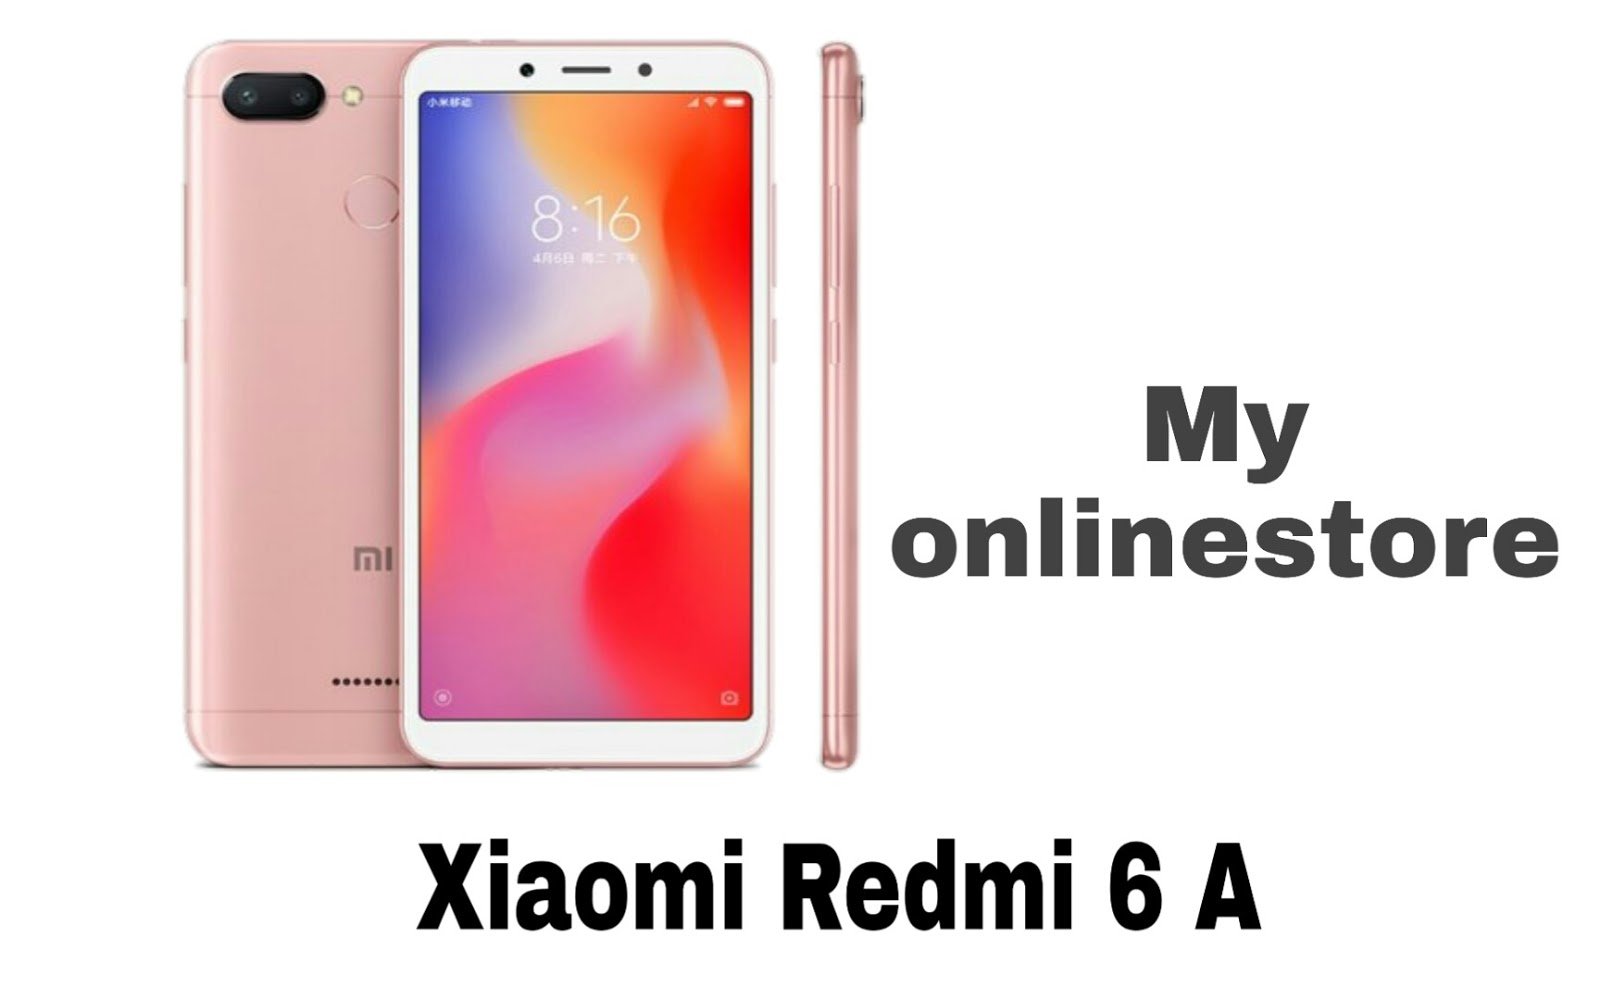 Redmi 6 Launch Date In India Starting Price 5999 Xiaomi 6a 2 16gb Gold Costs Rs It Is Equipped With Its Gb Ram And 16 Storage This Only For A Few Months